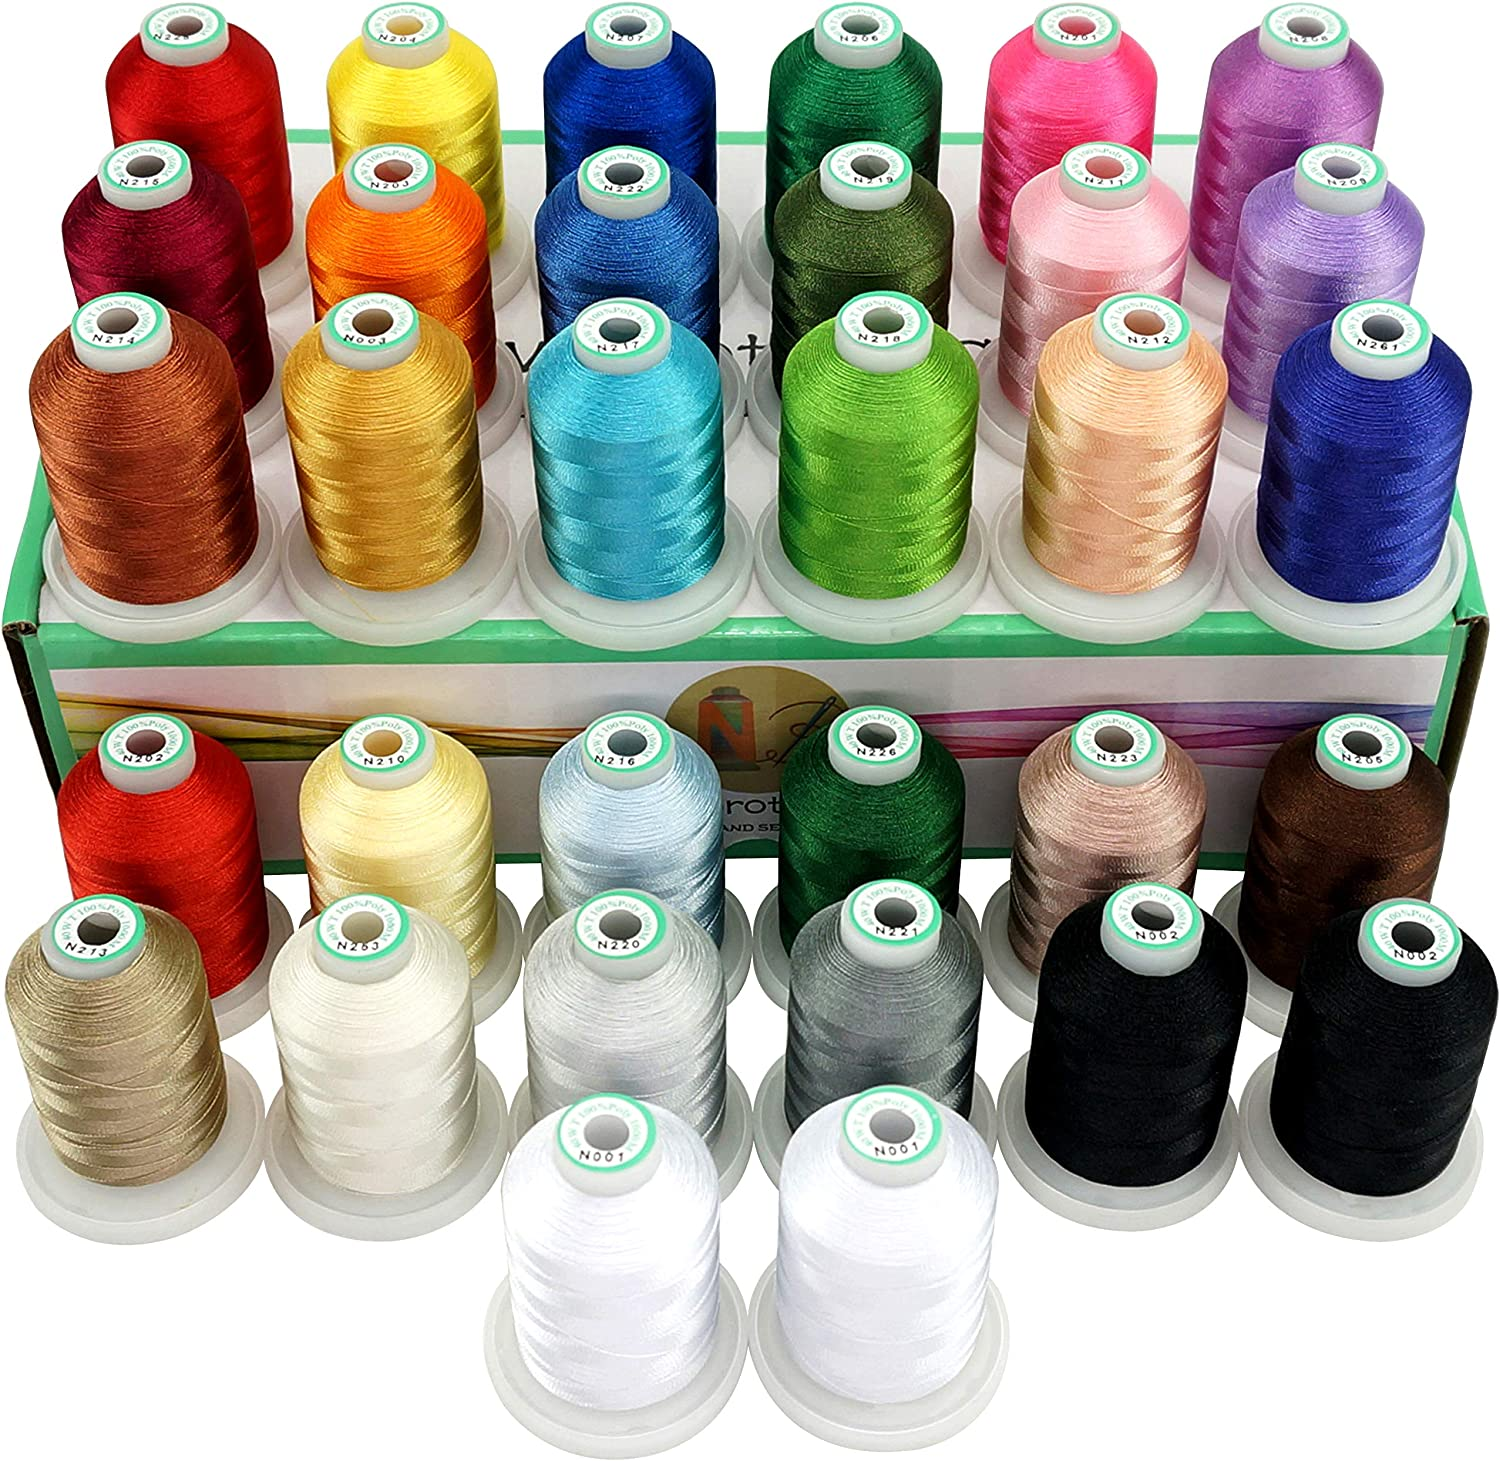 Assortment 2 1100Y New brothread 32 Spools Polyester Embroidery Machine Thread Kit 1000M Each Spool- New Colors Compatible with Janome and RA Colors